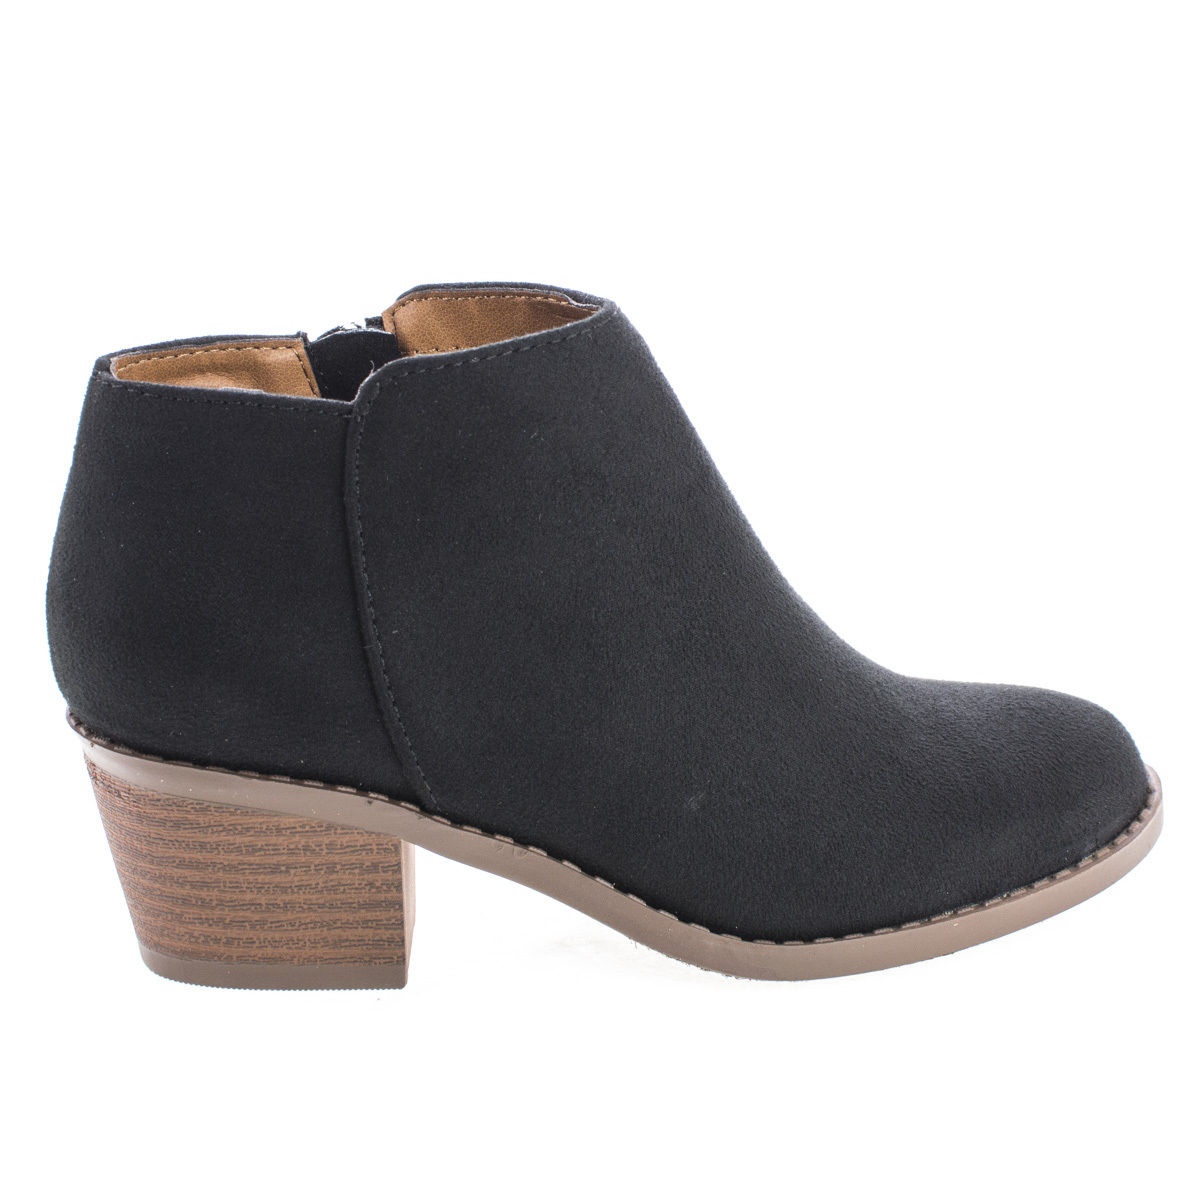 MugIIS by Soda, Girl's Round Toe Stacked Heel Ankle Boots, Children Little Girl's Shoes